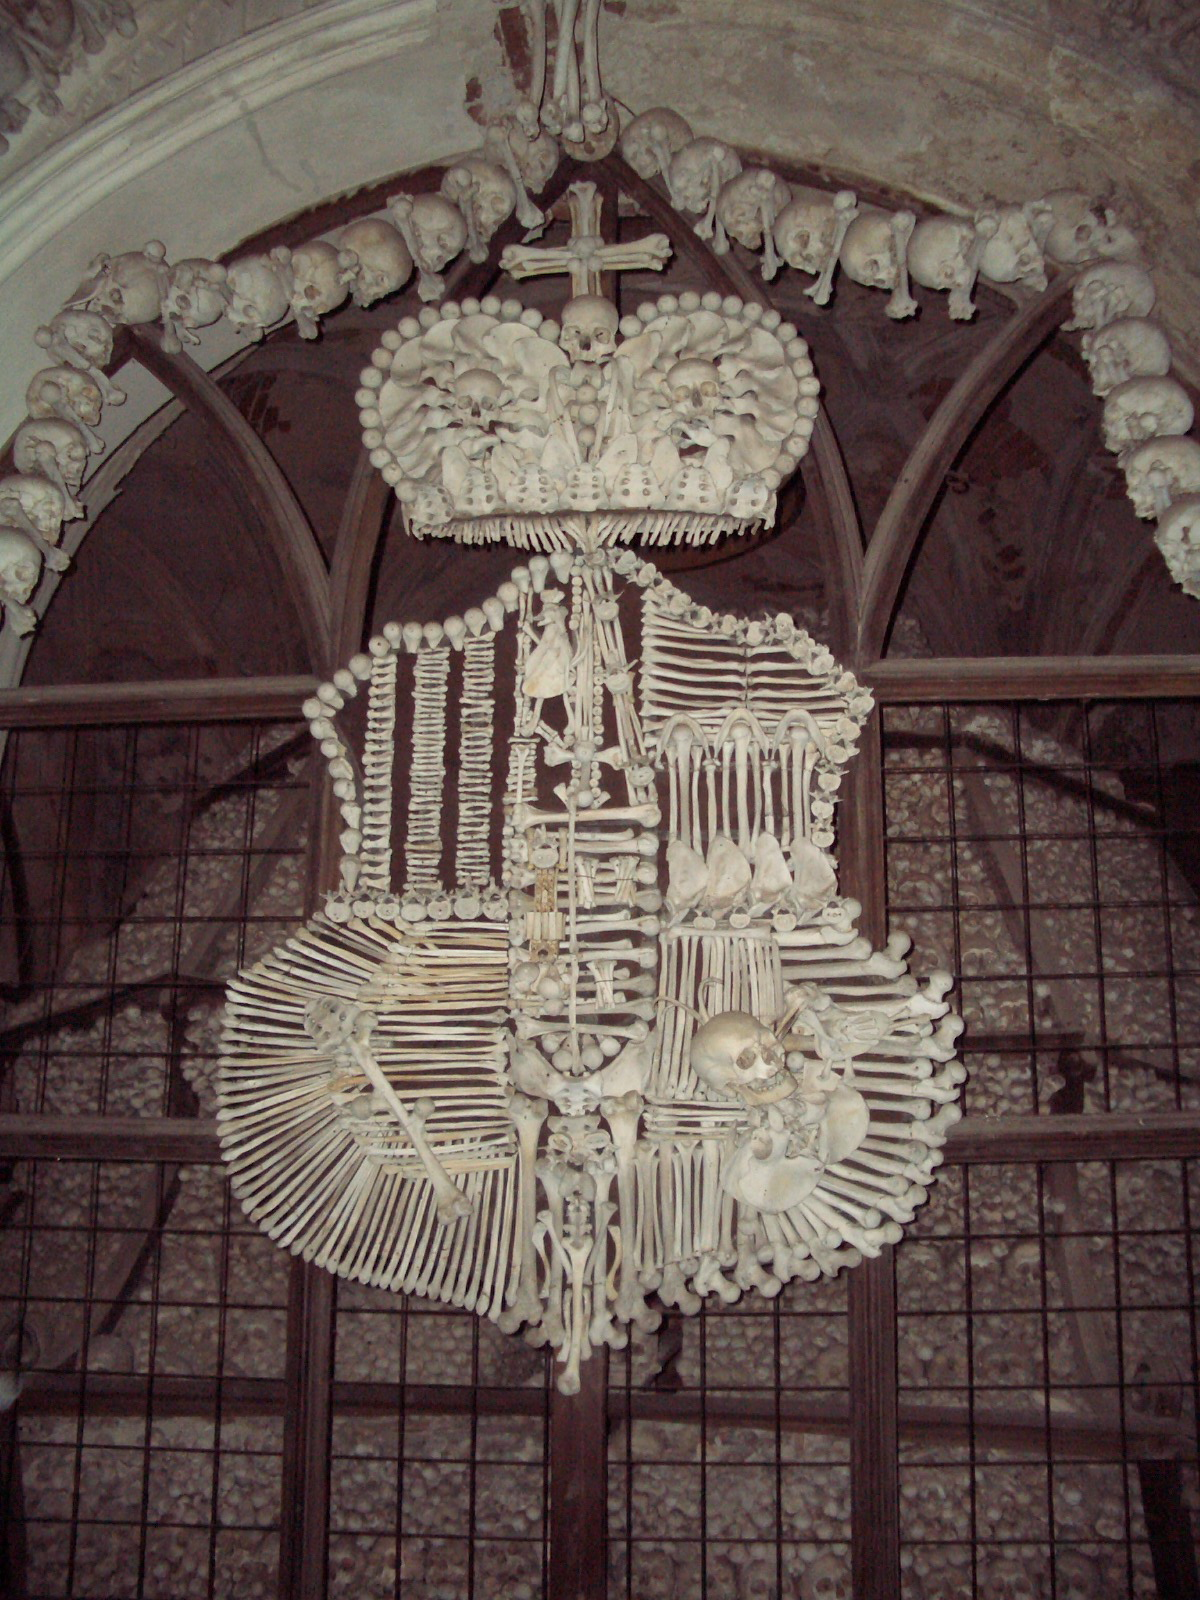 sculpture made from human bones